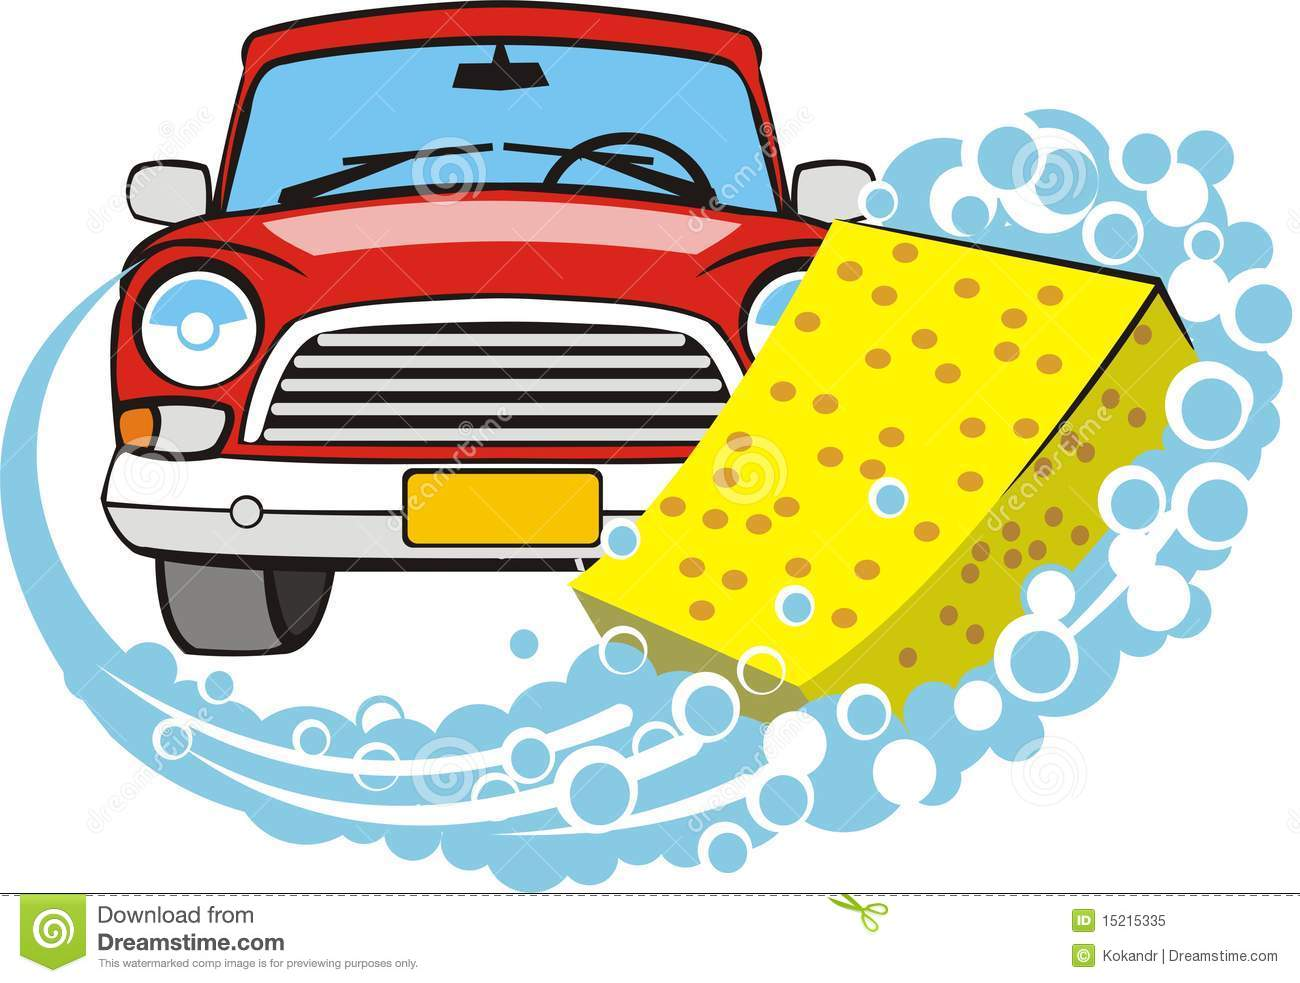 Car in automatic car wash clipart svg black and white Free Car Wash Clipart & Car Wash Clip Art Images - ClipartALL.com svg black and white